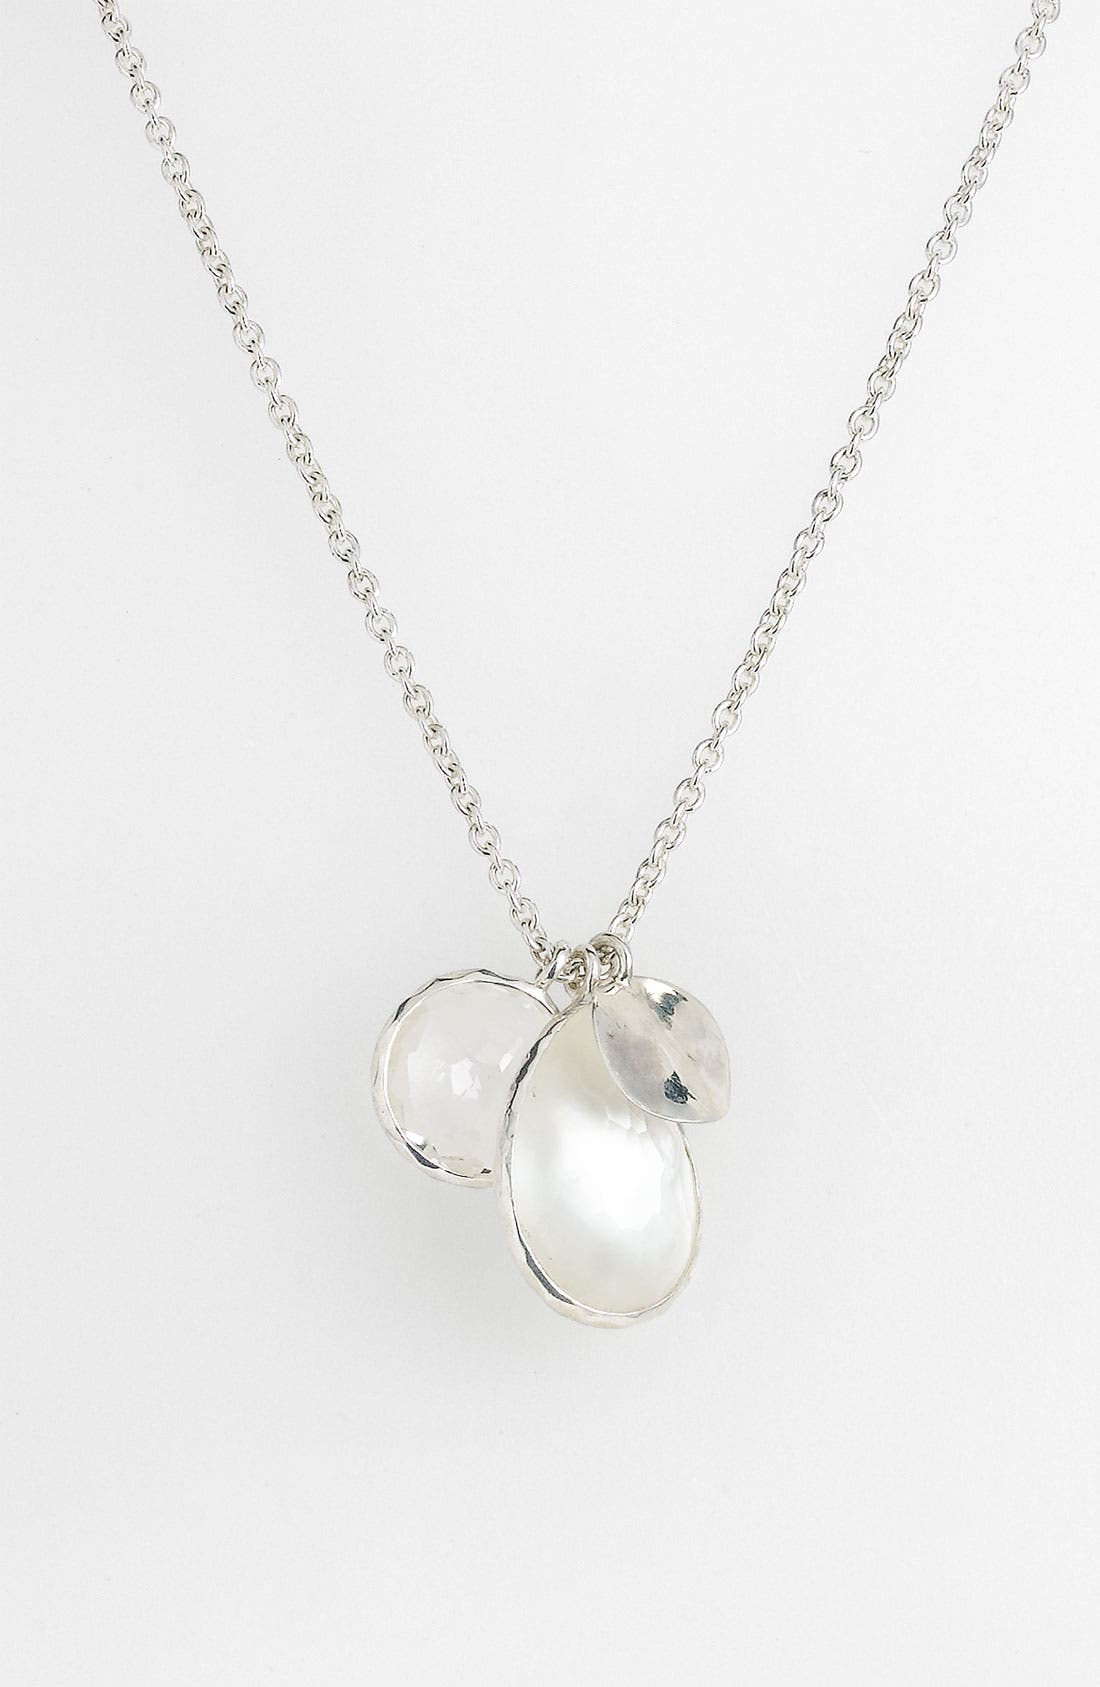 Alternate Image 1 Selected - Ippolita Triple Charm Necklace (Nordstrom Exclusive)